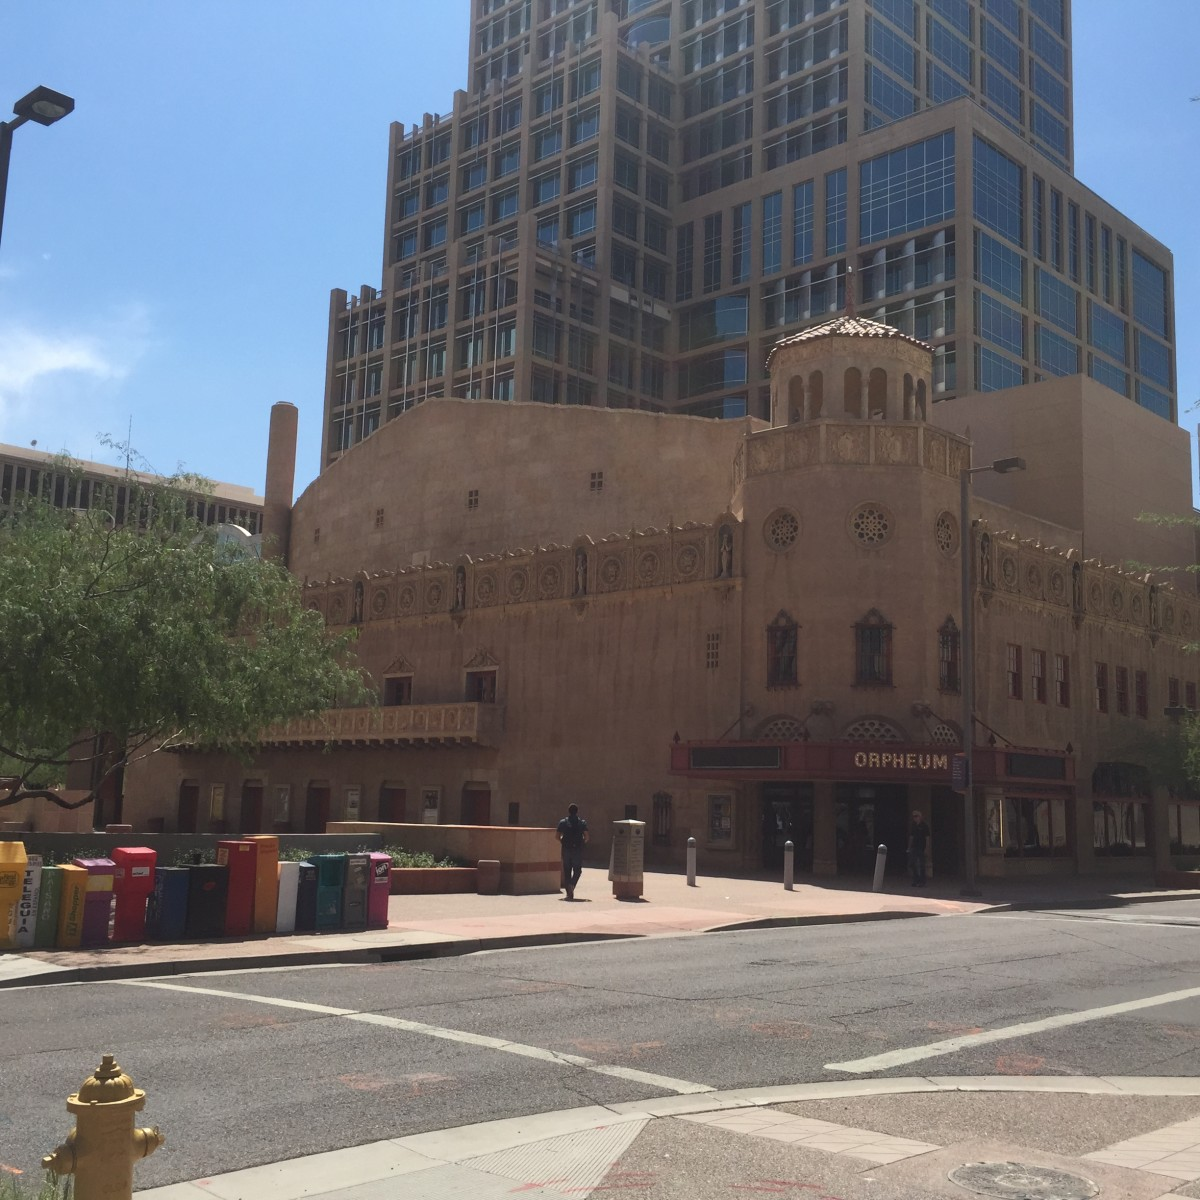 Historic Orpheum Theatre in Downtown Phoenix